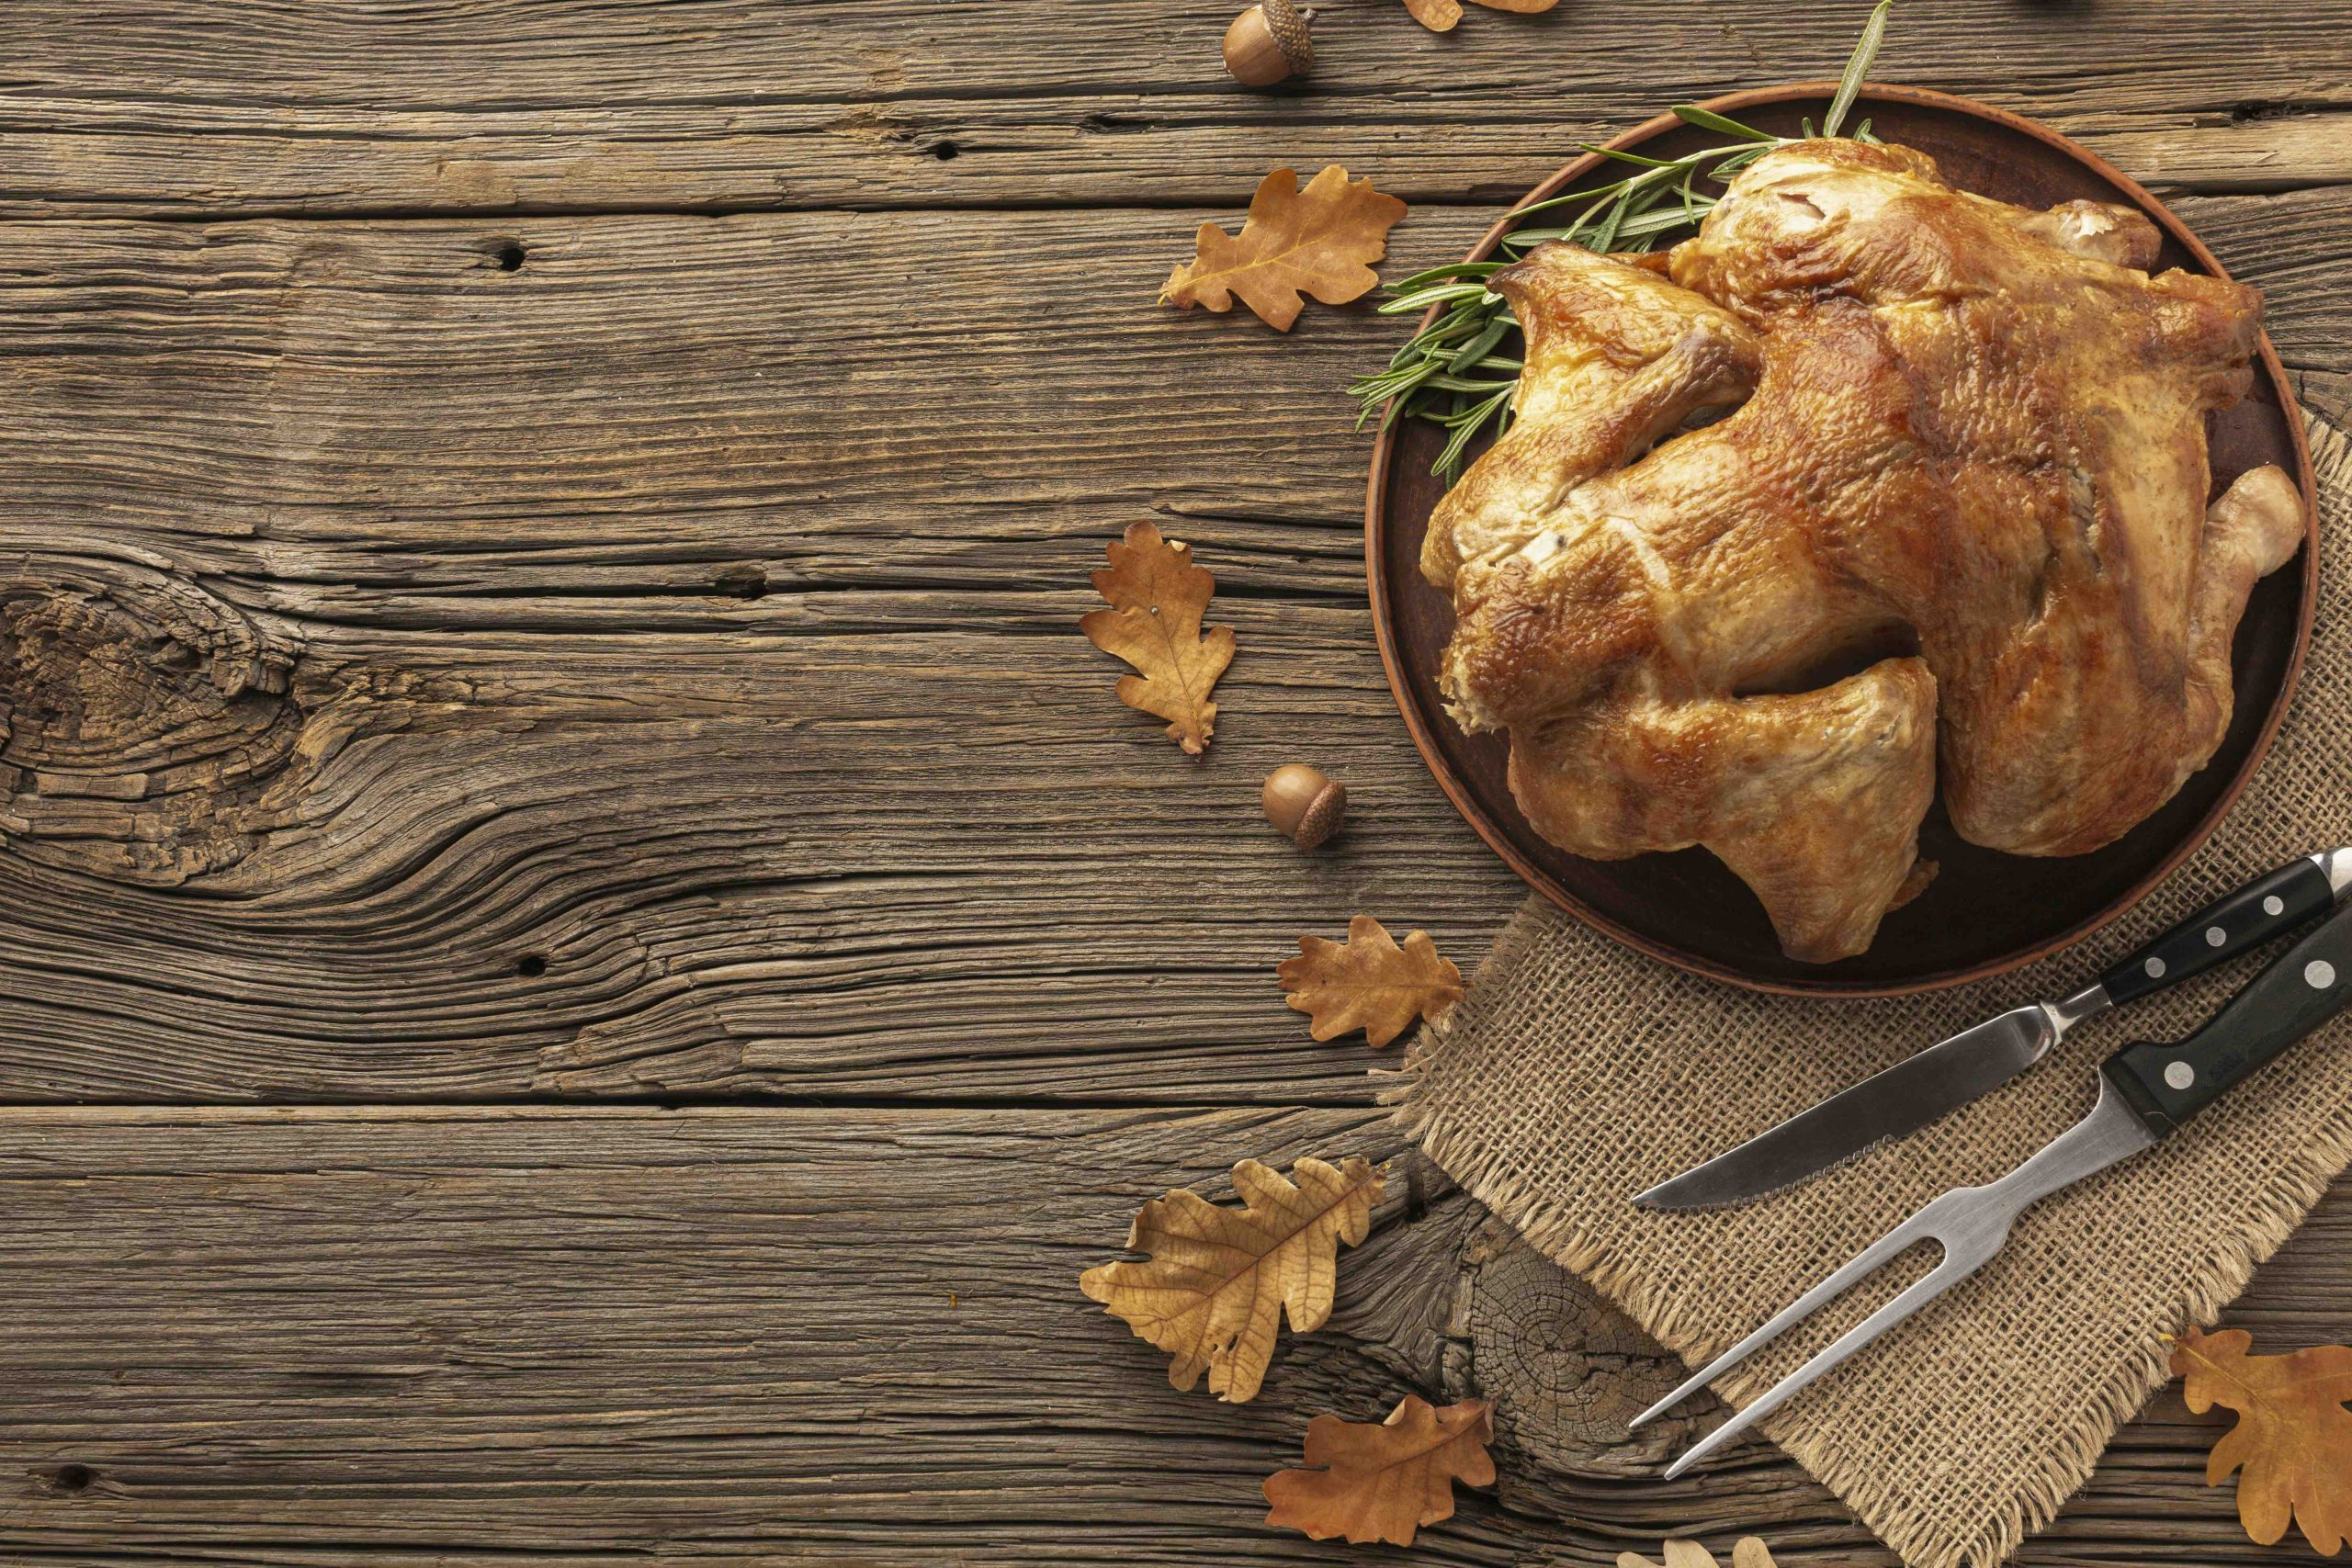 Turkey on table with leaves